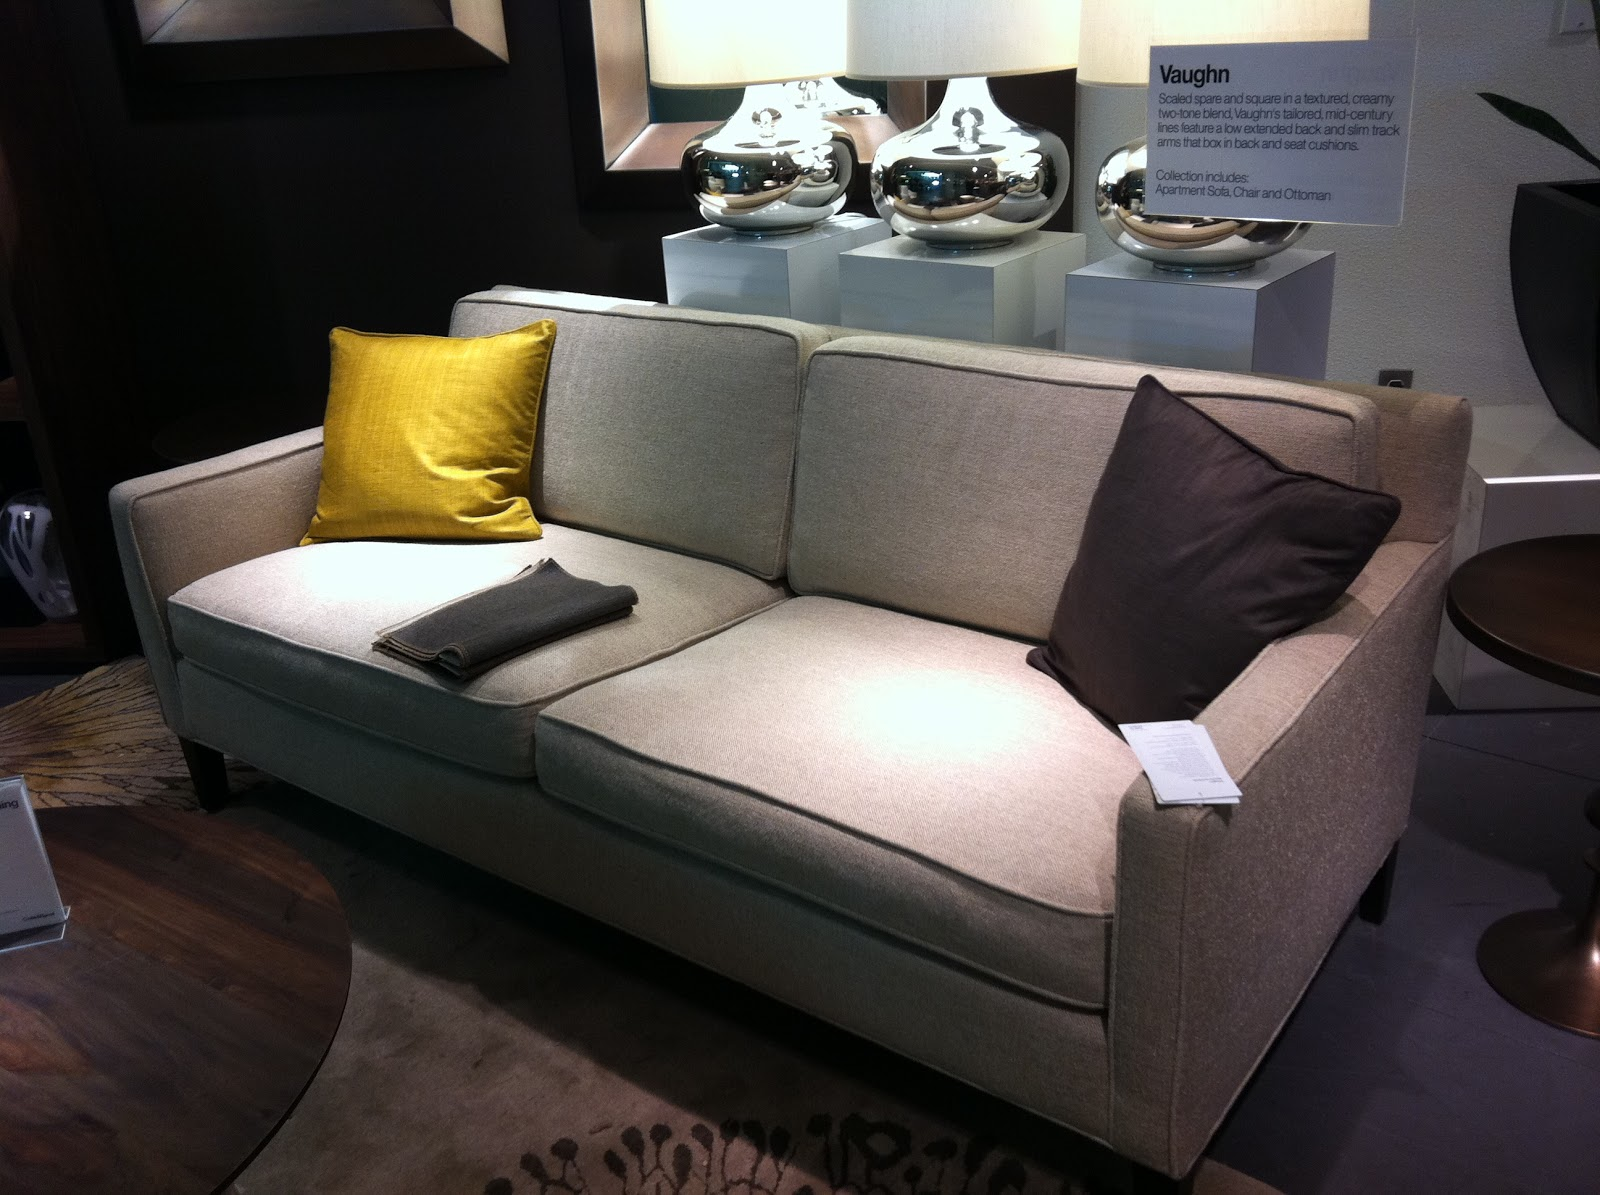 Etonnant Next Up, We Have The Vaughn Apartment Sofa, Which Is Beautiful! It Has  Clean Lines And A Classic Look But No Tufting. And Itu0027s $1399 Despite Not  Having A ...